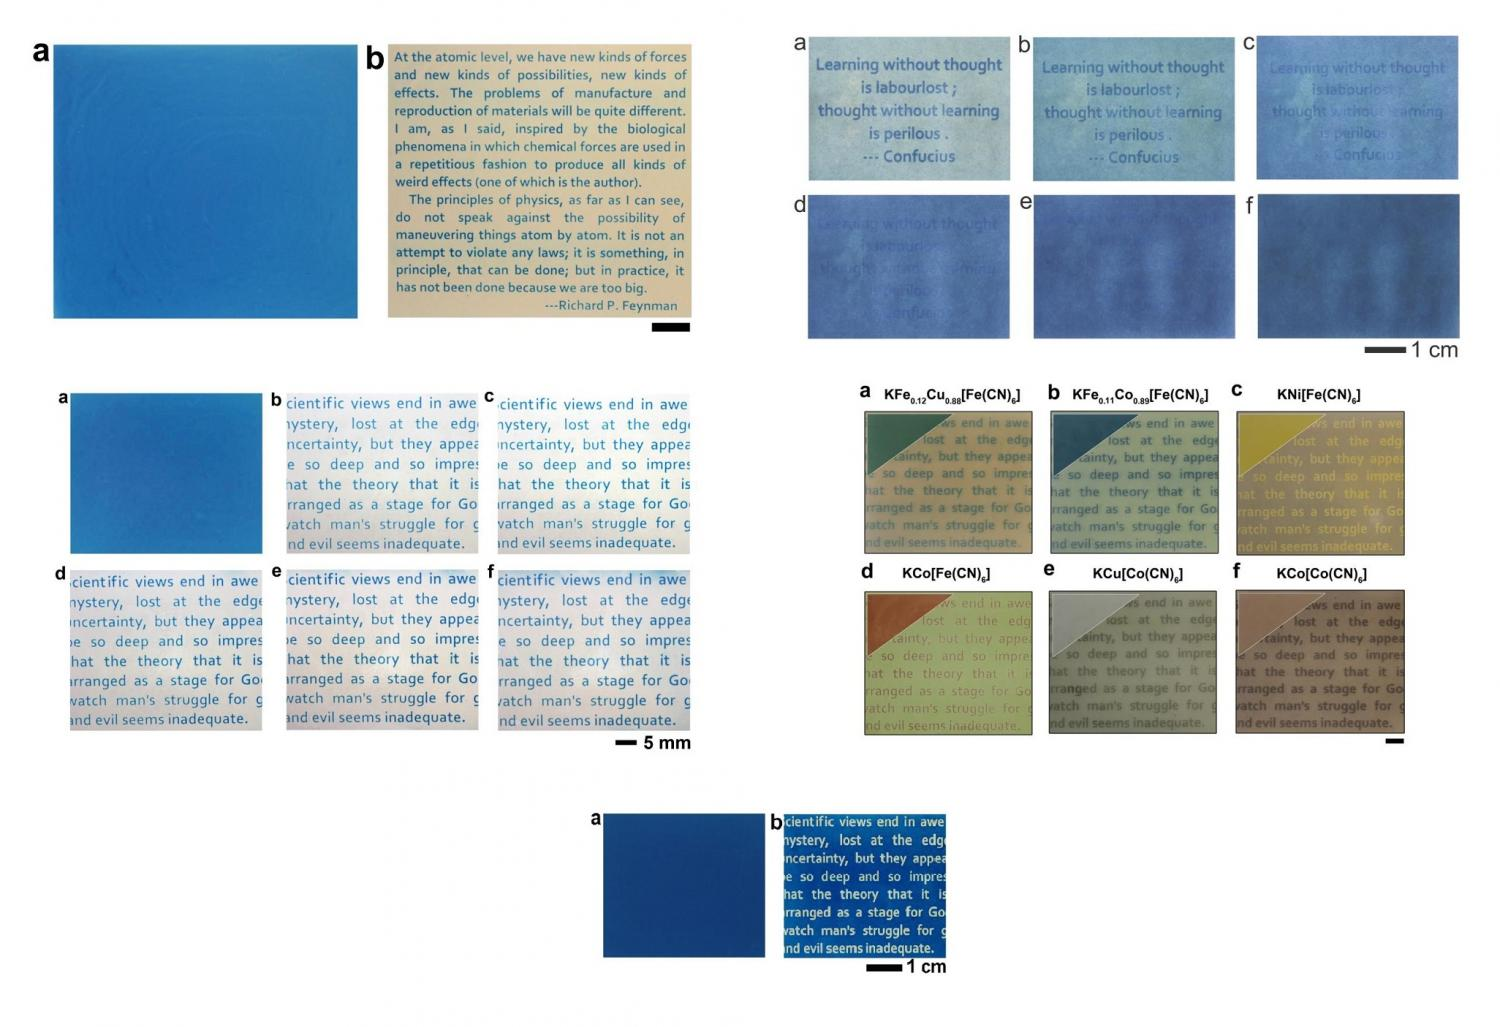 no ink required paper can be printed light various samples of the light printable paper credit wang et al copy2017 american chemical society